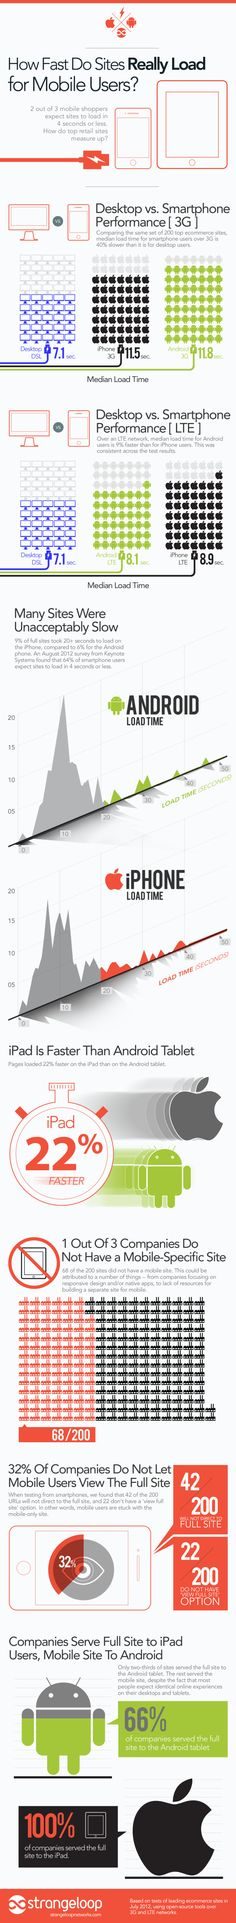 How Fast Fo Sites Really Load For Mobile Users?[INFOGRAPHIC]